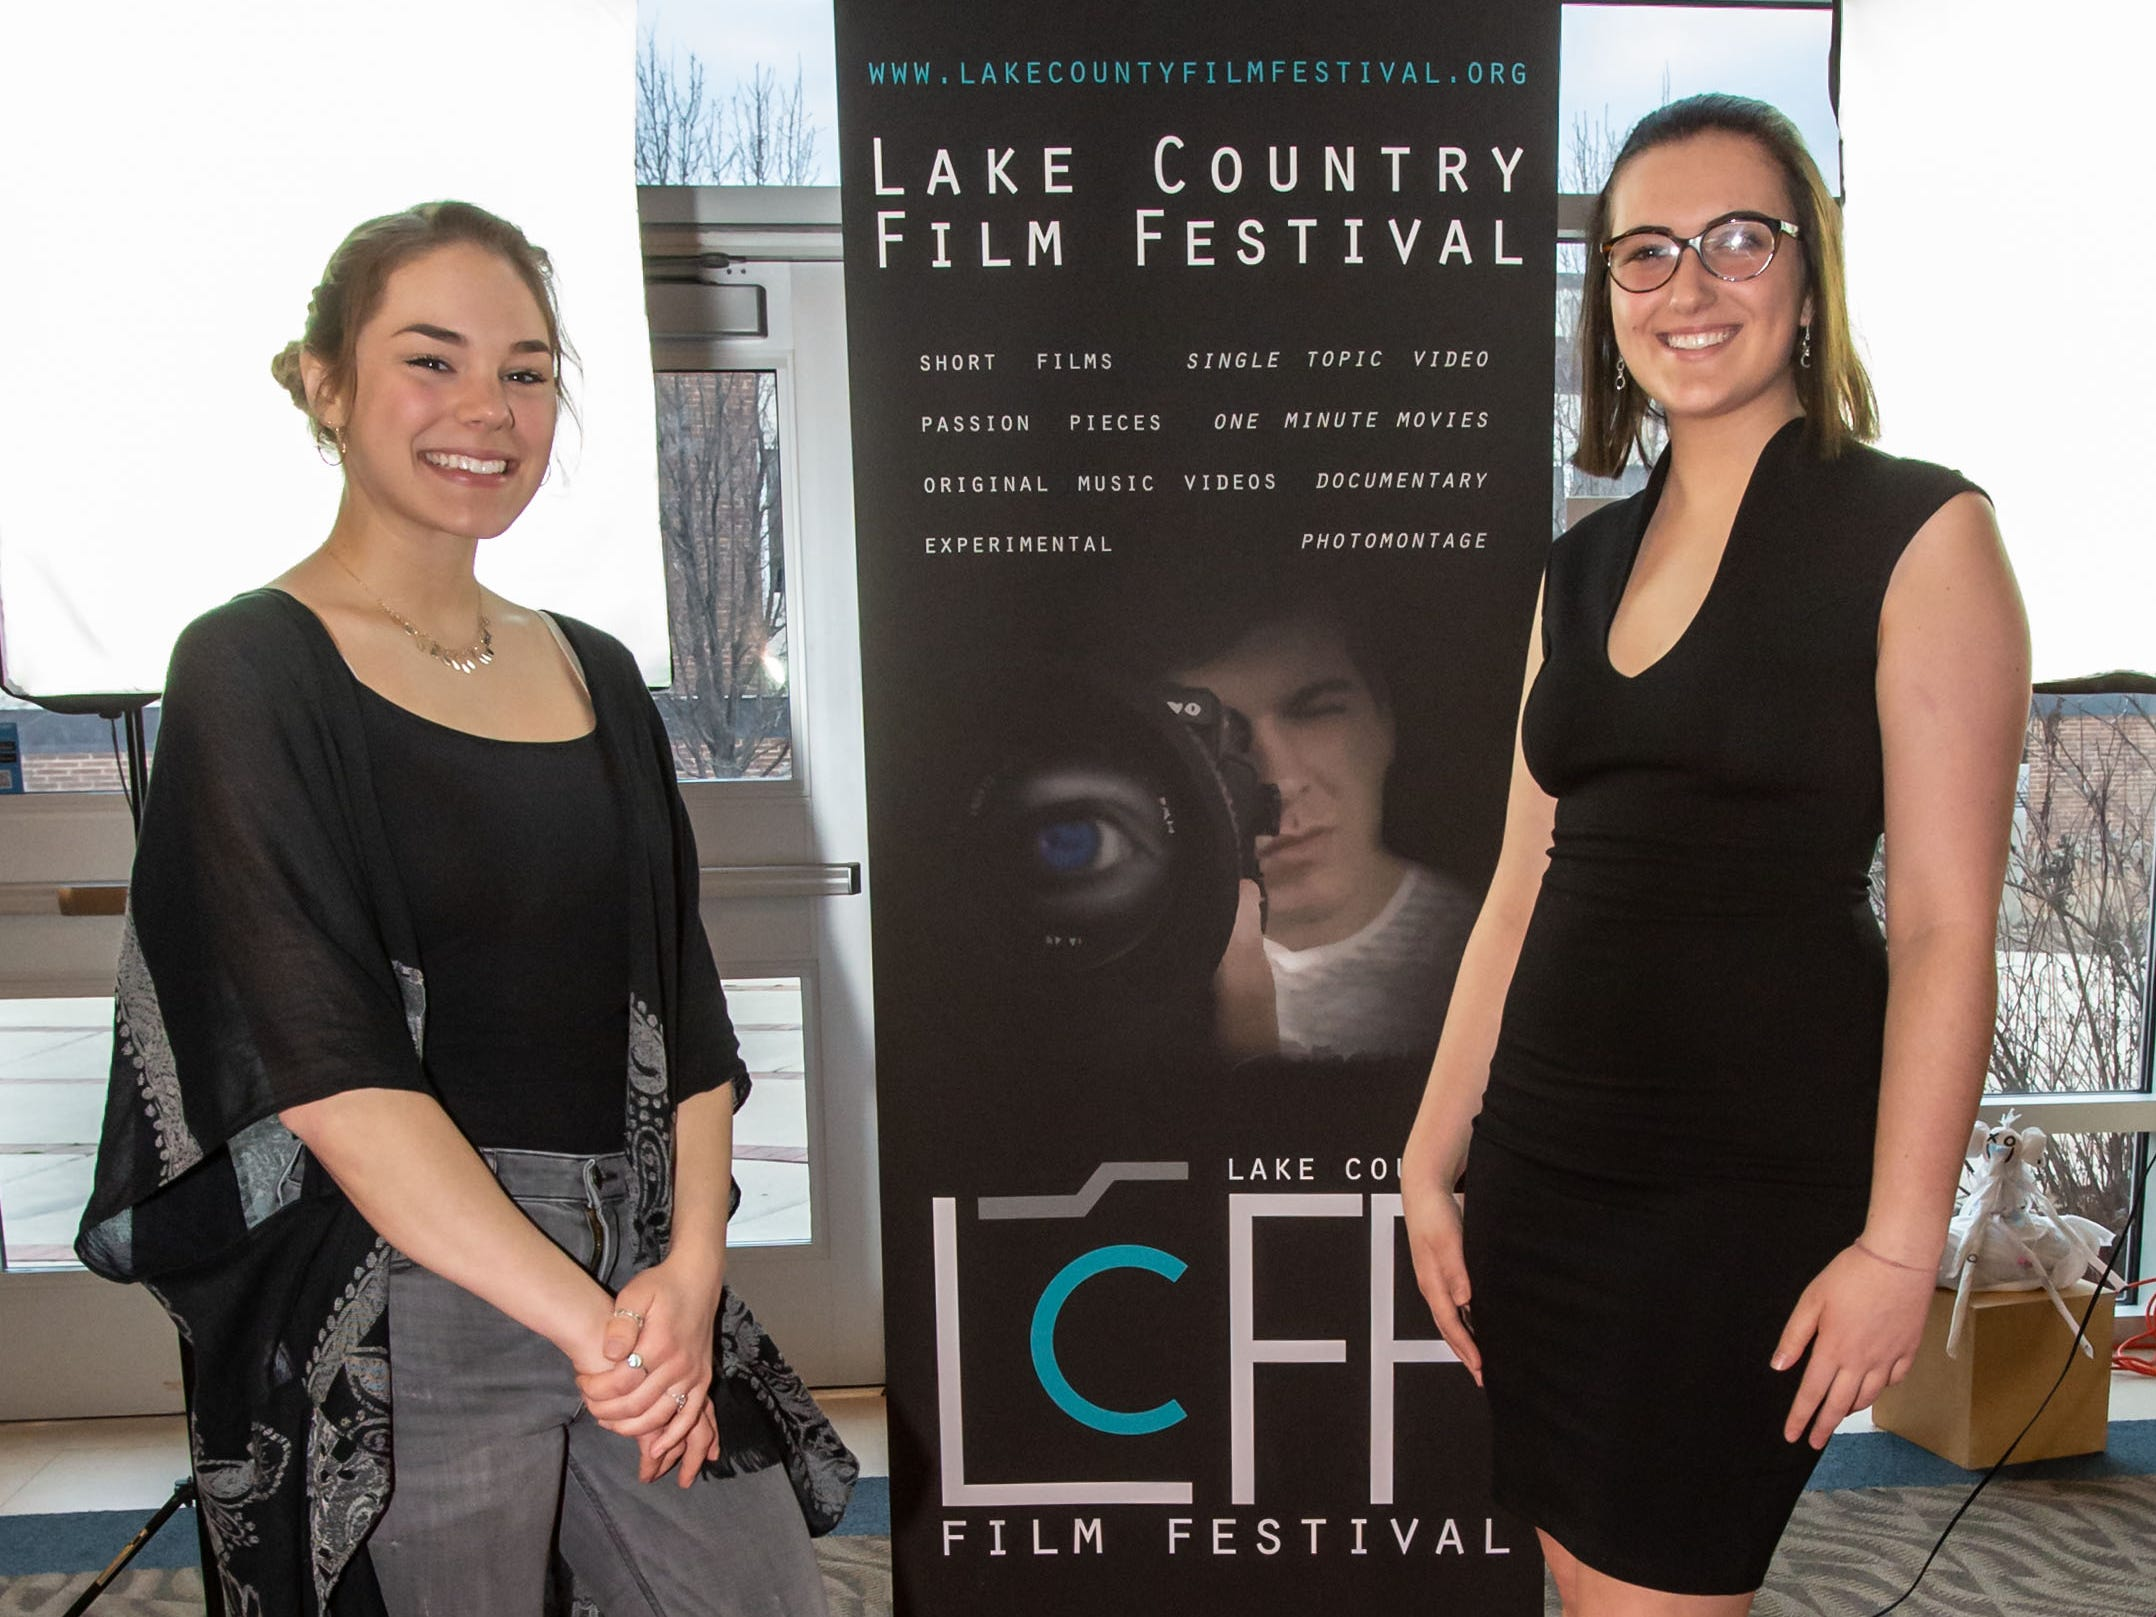 Filmmaker Lindsay Kramer (right) of West Bend and her friend Gab Zuern pause for a photo on the red carpet during the 4th Annual Lake Country Film Festival at the Oconomowoc Arts Center on Friday, April 5, 2019. The annual festival is open to students in the Lake Country Area and aims to encourage future filmmakers to create work that inspires audiences through the power of visual artistry, sound design, and storytelling.